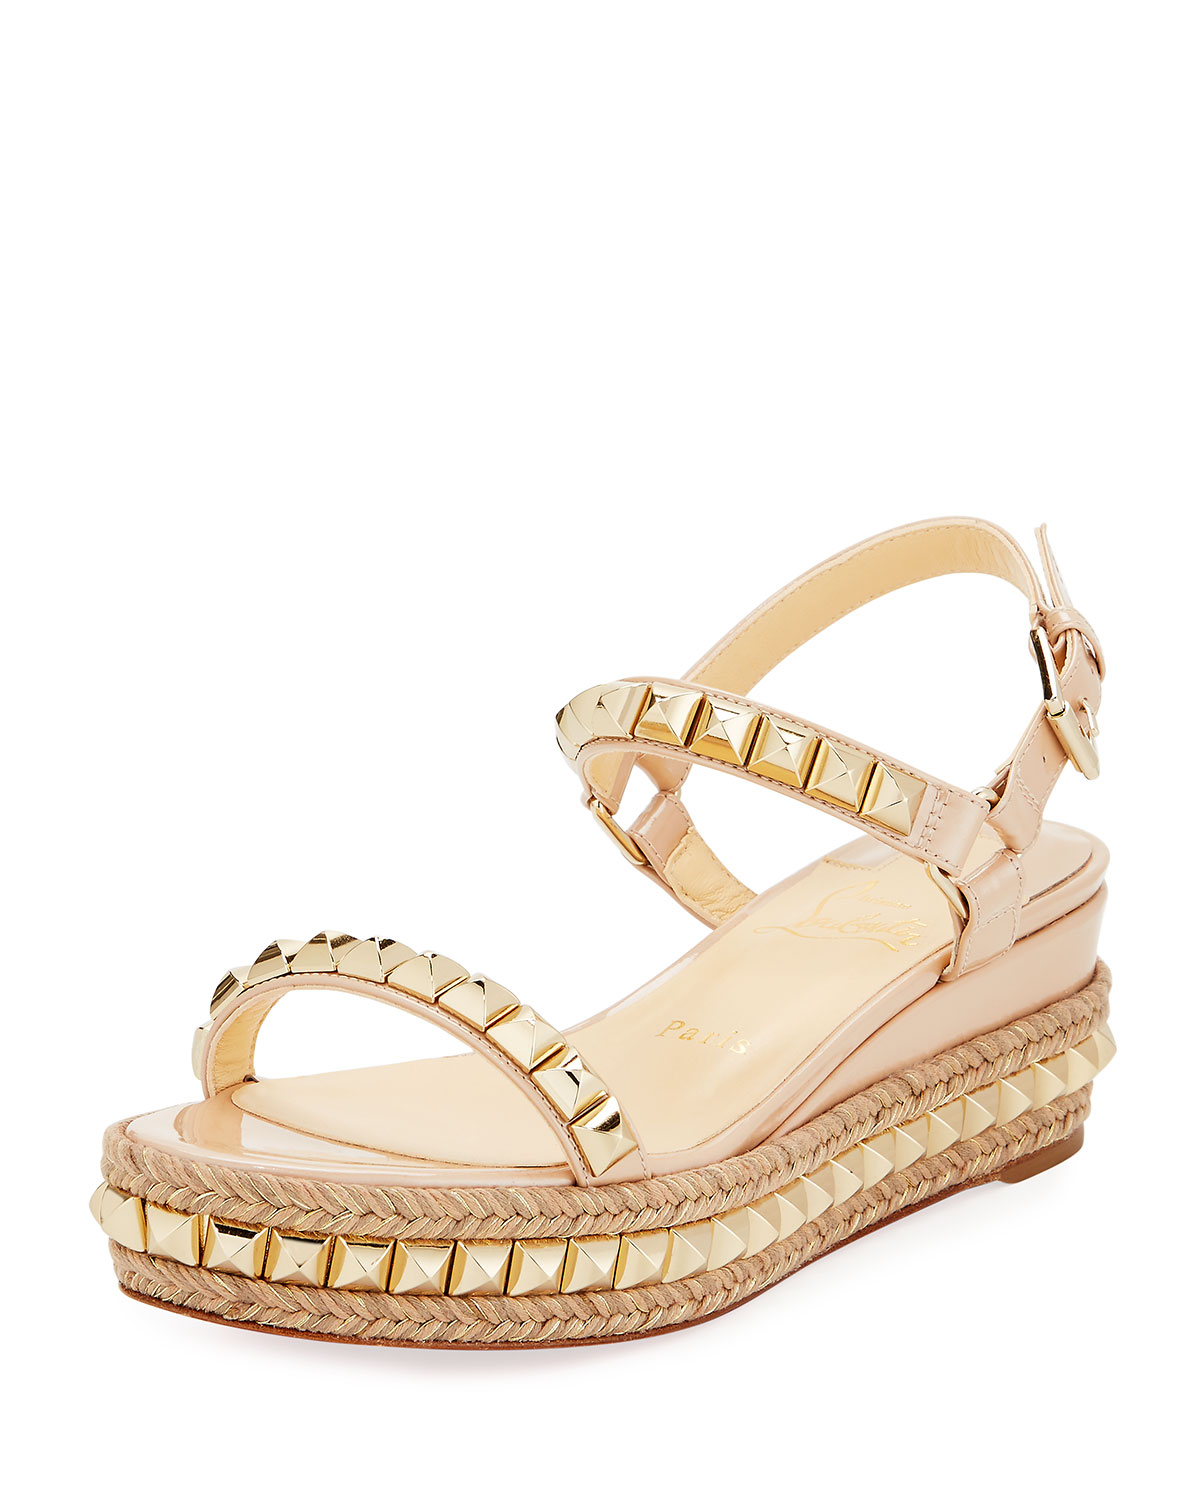 watch c7ed3 dad51 Cataclou Two-Band Red Sole Wedge Sandal, Nude